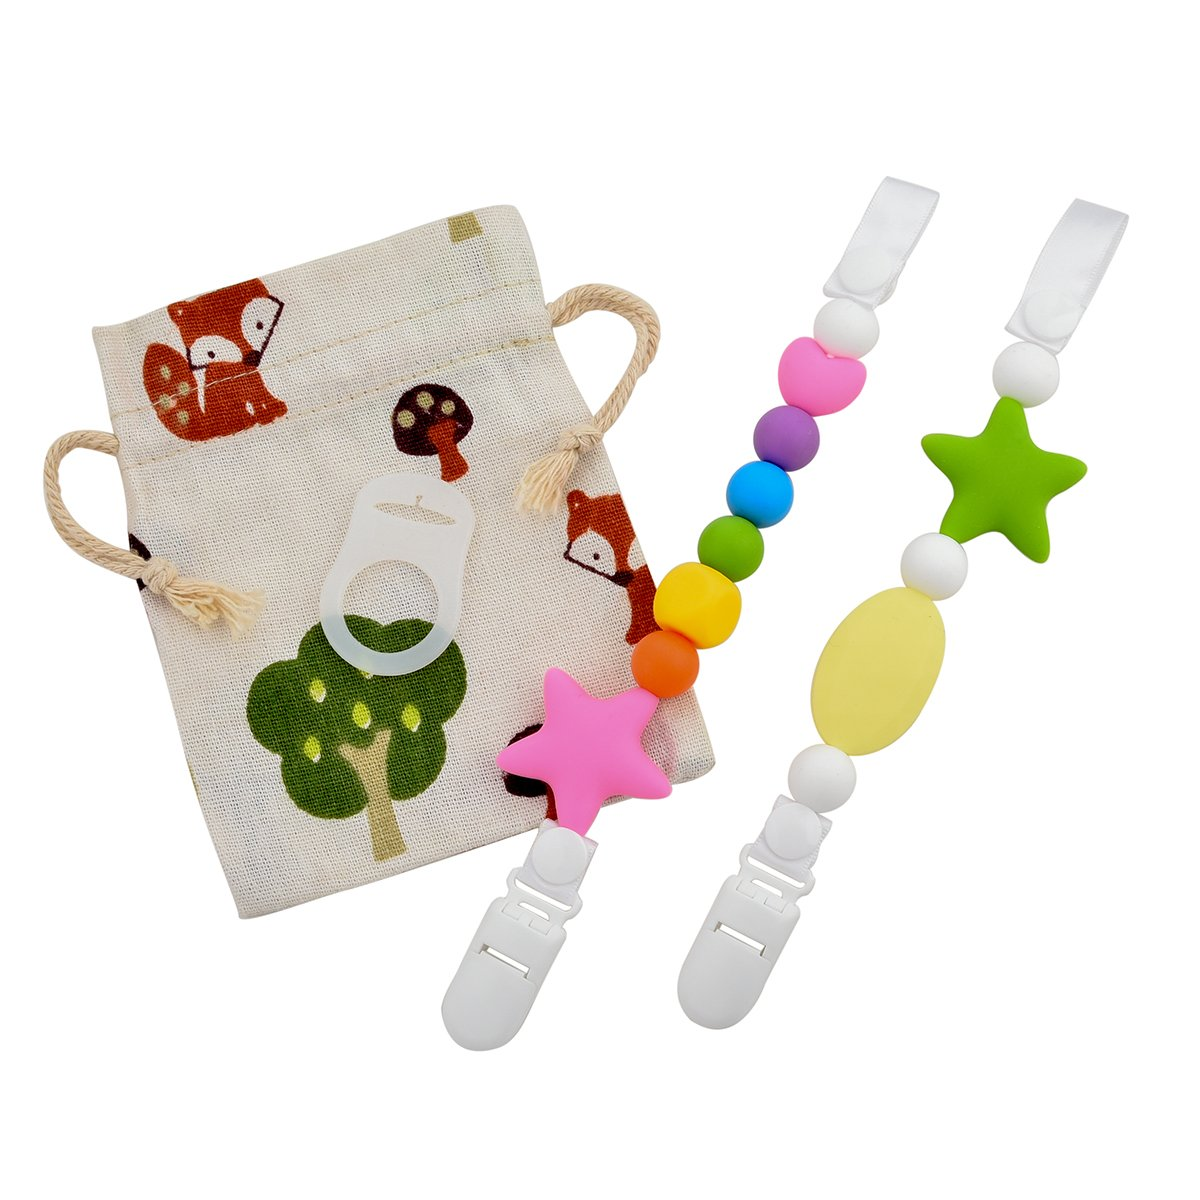 Teether Pacifier Colorful Silicone Soothie Image 1